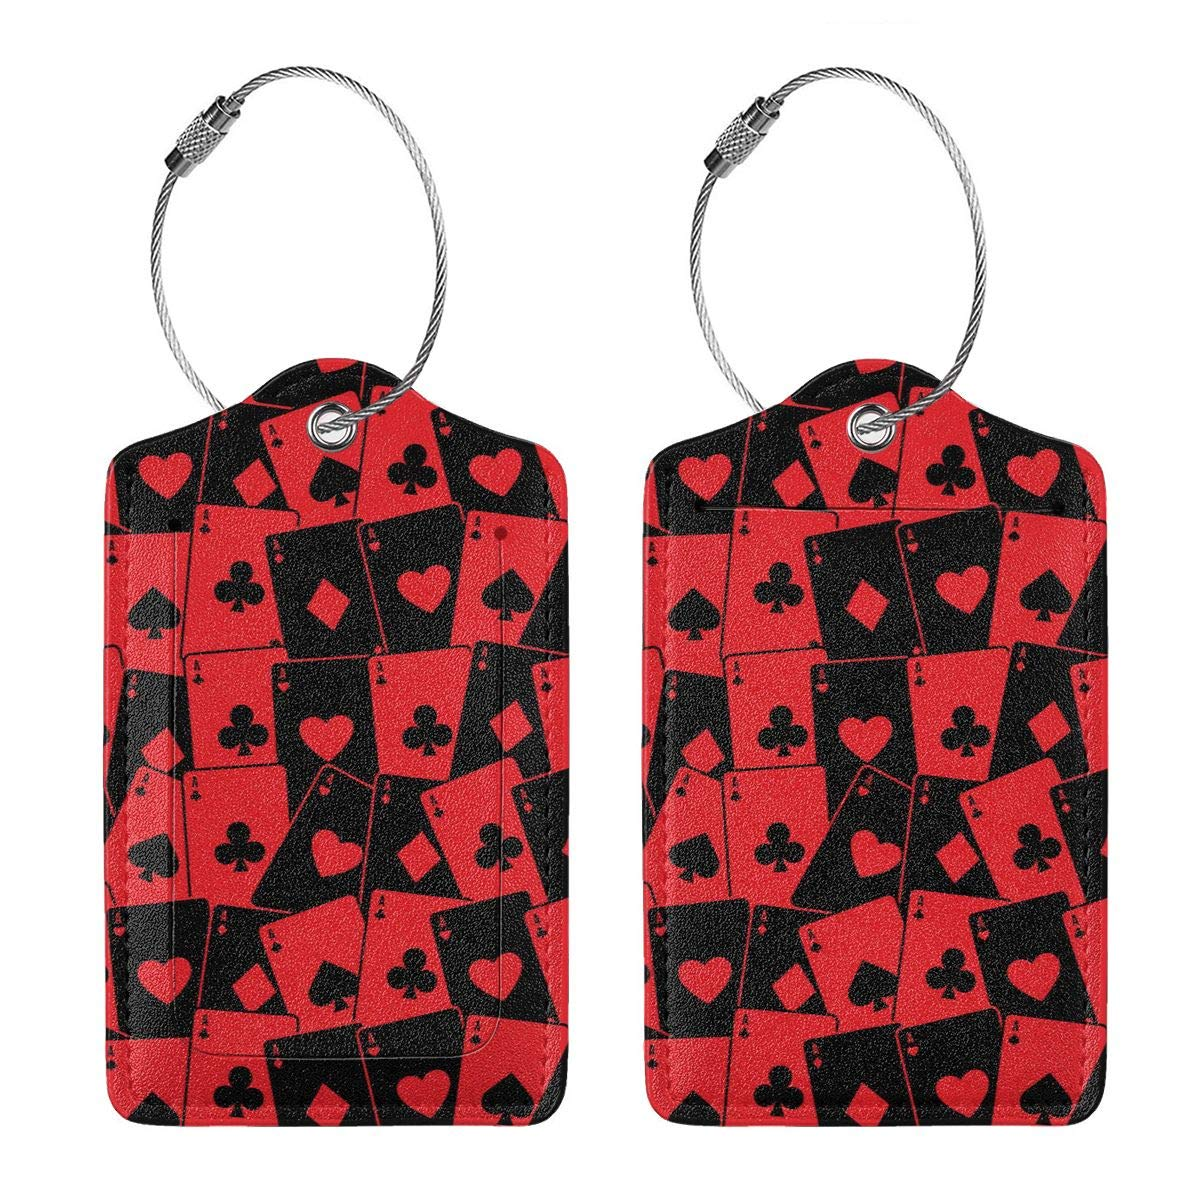 Red Poker Card Leather Luggage Tags Personalized Travel Accessories With Privacy Flap